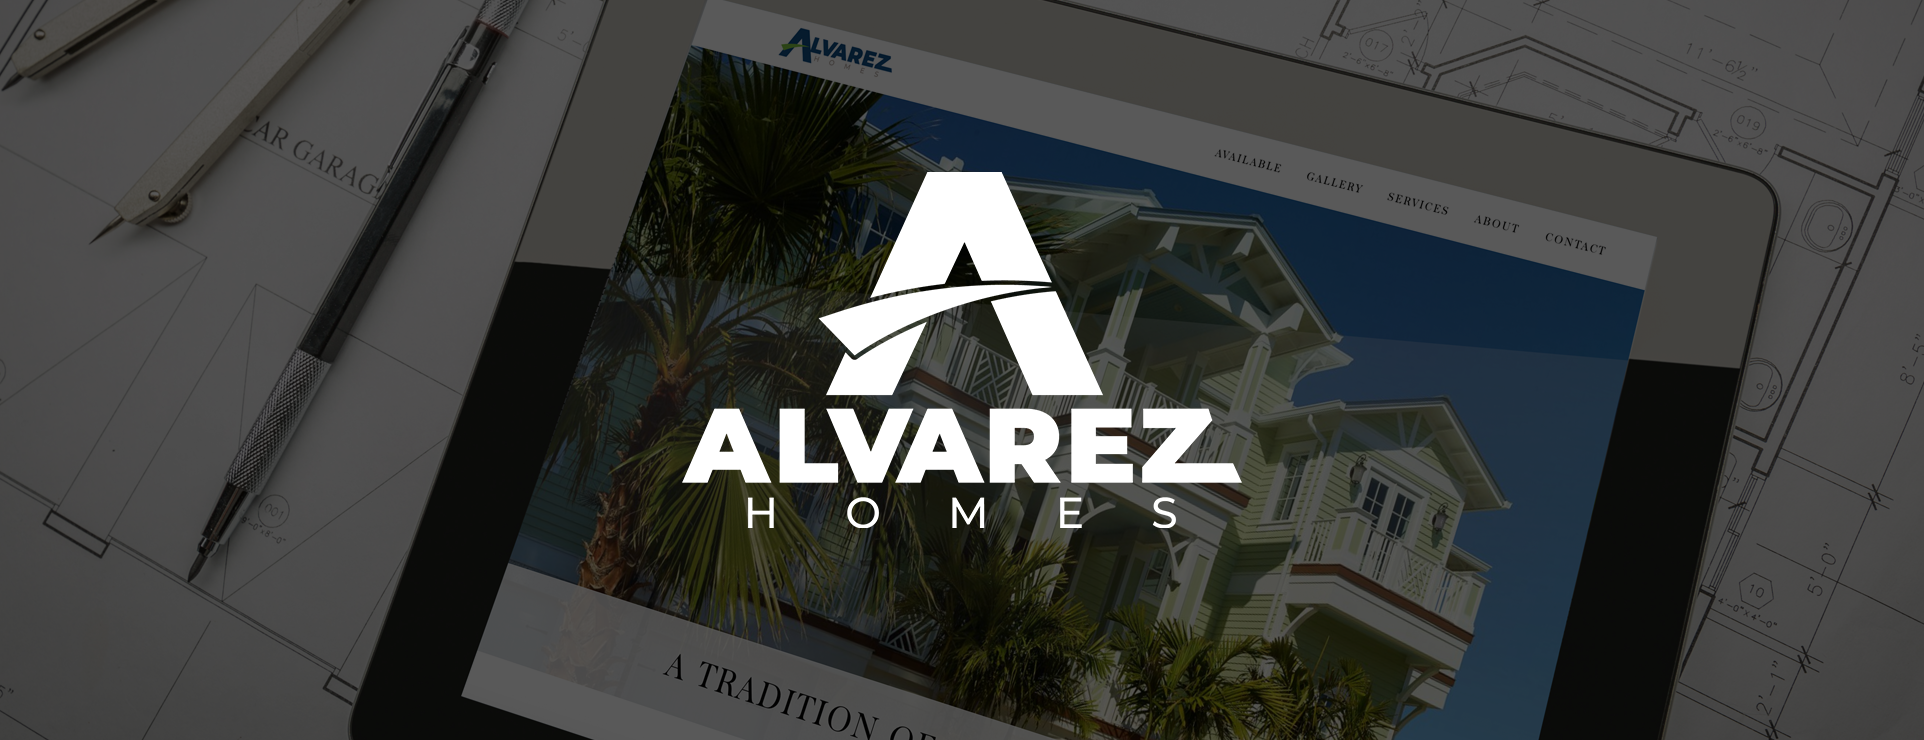 Alvarez_HeaderImage